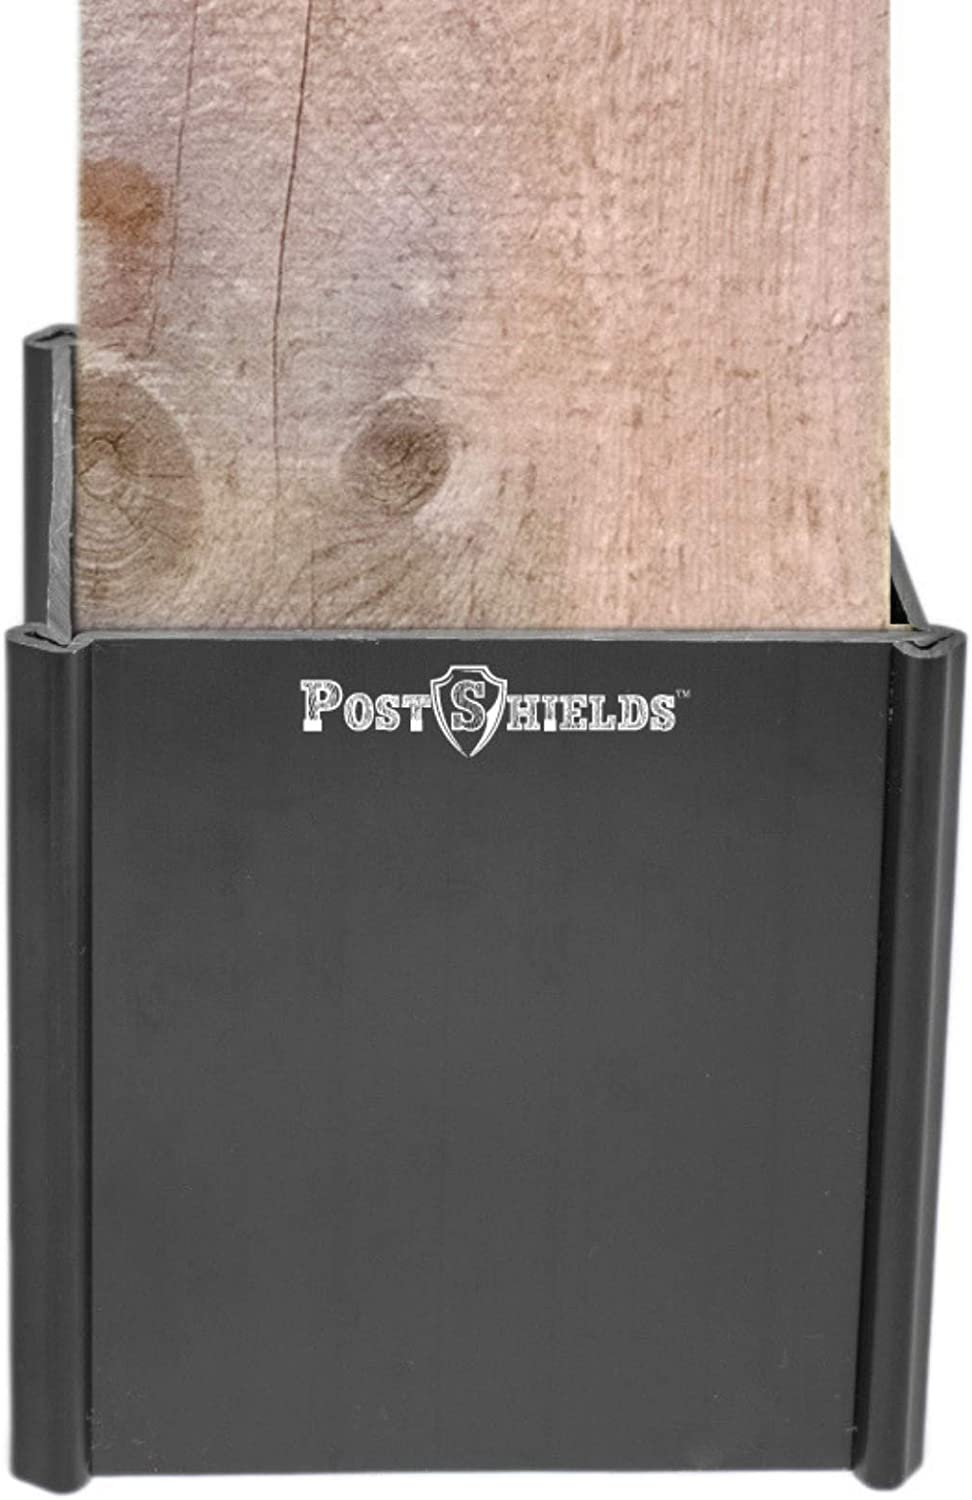 Amazon Com Post Shields Post Protector This Protects Your Mailbox Deck Fence Posts From Damage By Lawn Maintenance Equipment Fits Wood Metal Posts No Tools Screws Or